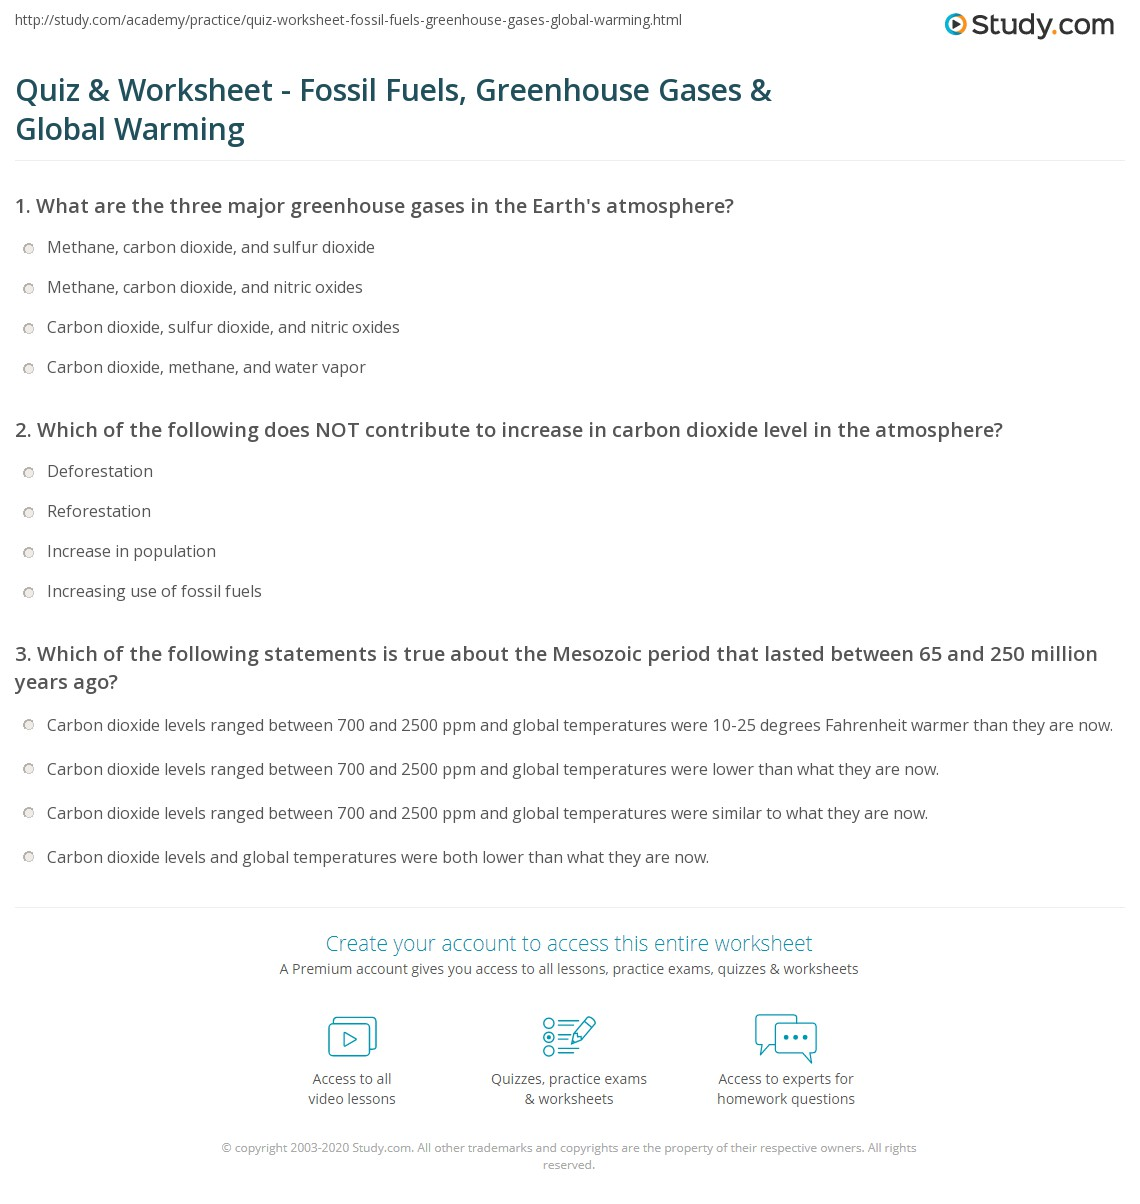 Quiz & Worksheet - Fossil Fuels, Greenhouse Gases & Global Warming ...